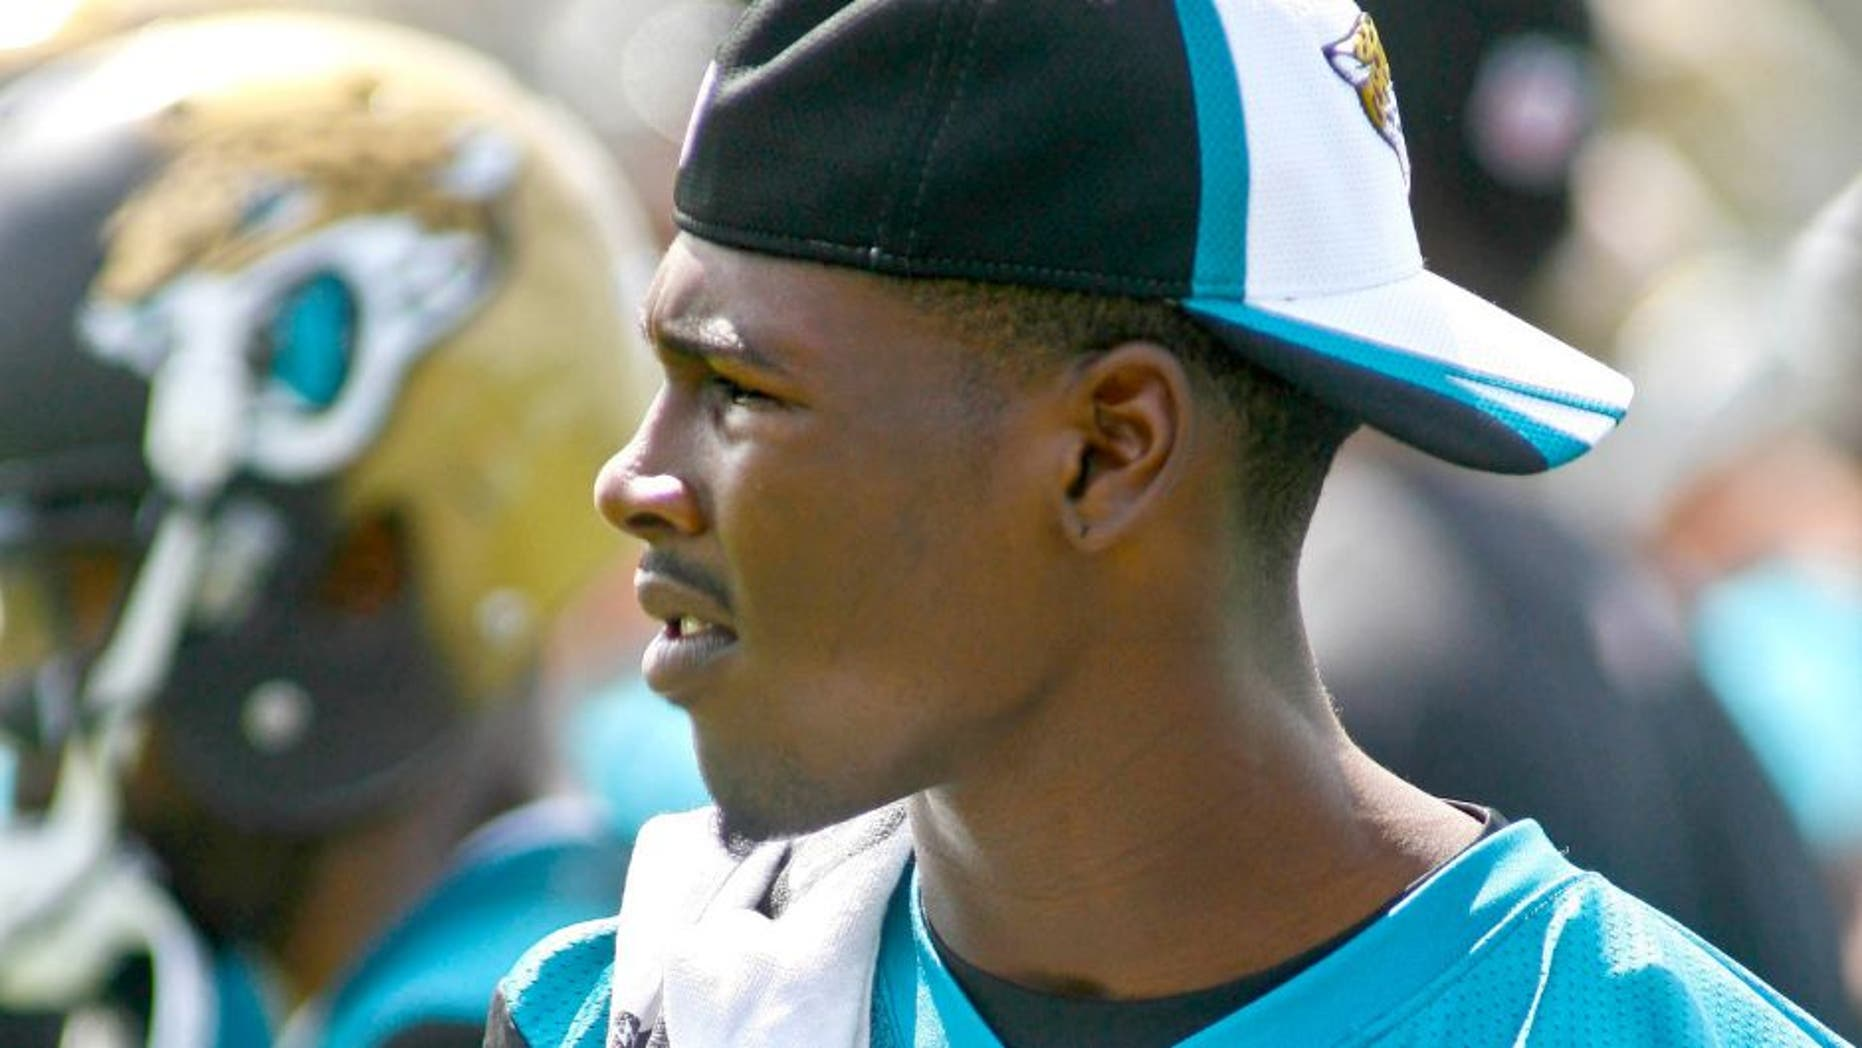 May 28, 2015; Jacksonville, FL, USA; Jacksonville Jaguars wide receiver Marqise Lee (11) during OTAs at the Florida Blue Health and Wellness Practice Fields. Mandatory Credit: Phil Sears-USA TODAY Sports